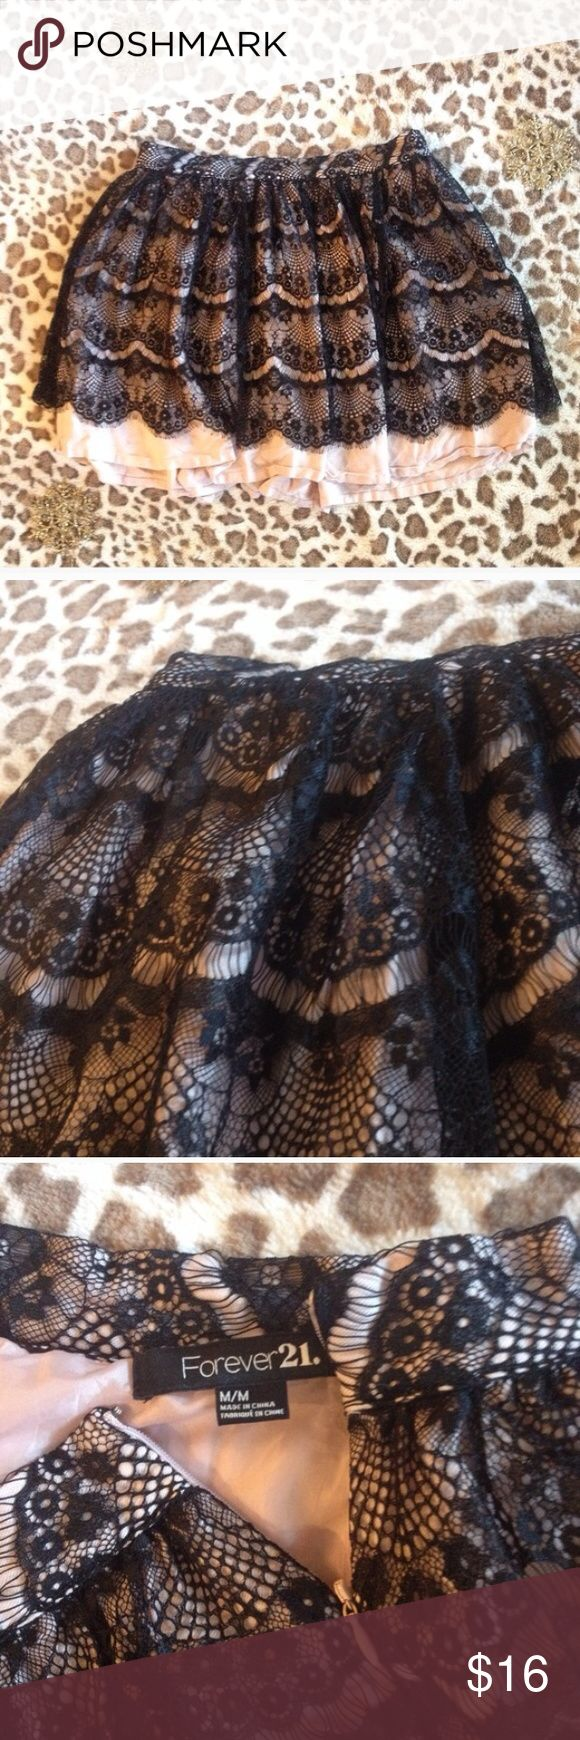 Forever 21 Black Lace Mini Skirt With Pink Slip Forever 21 lined lace skirt EUC Forever 21 Skirts Mini